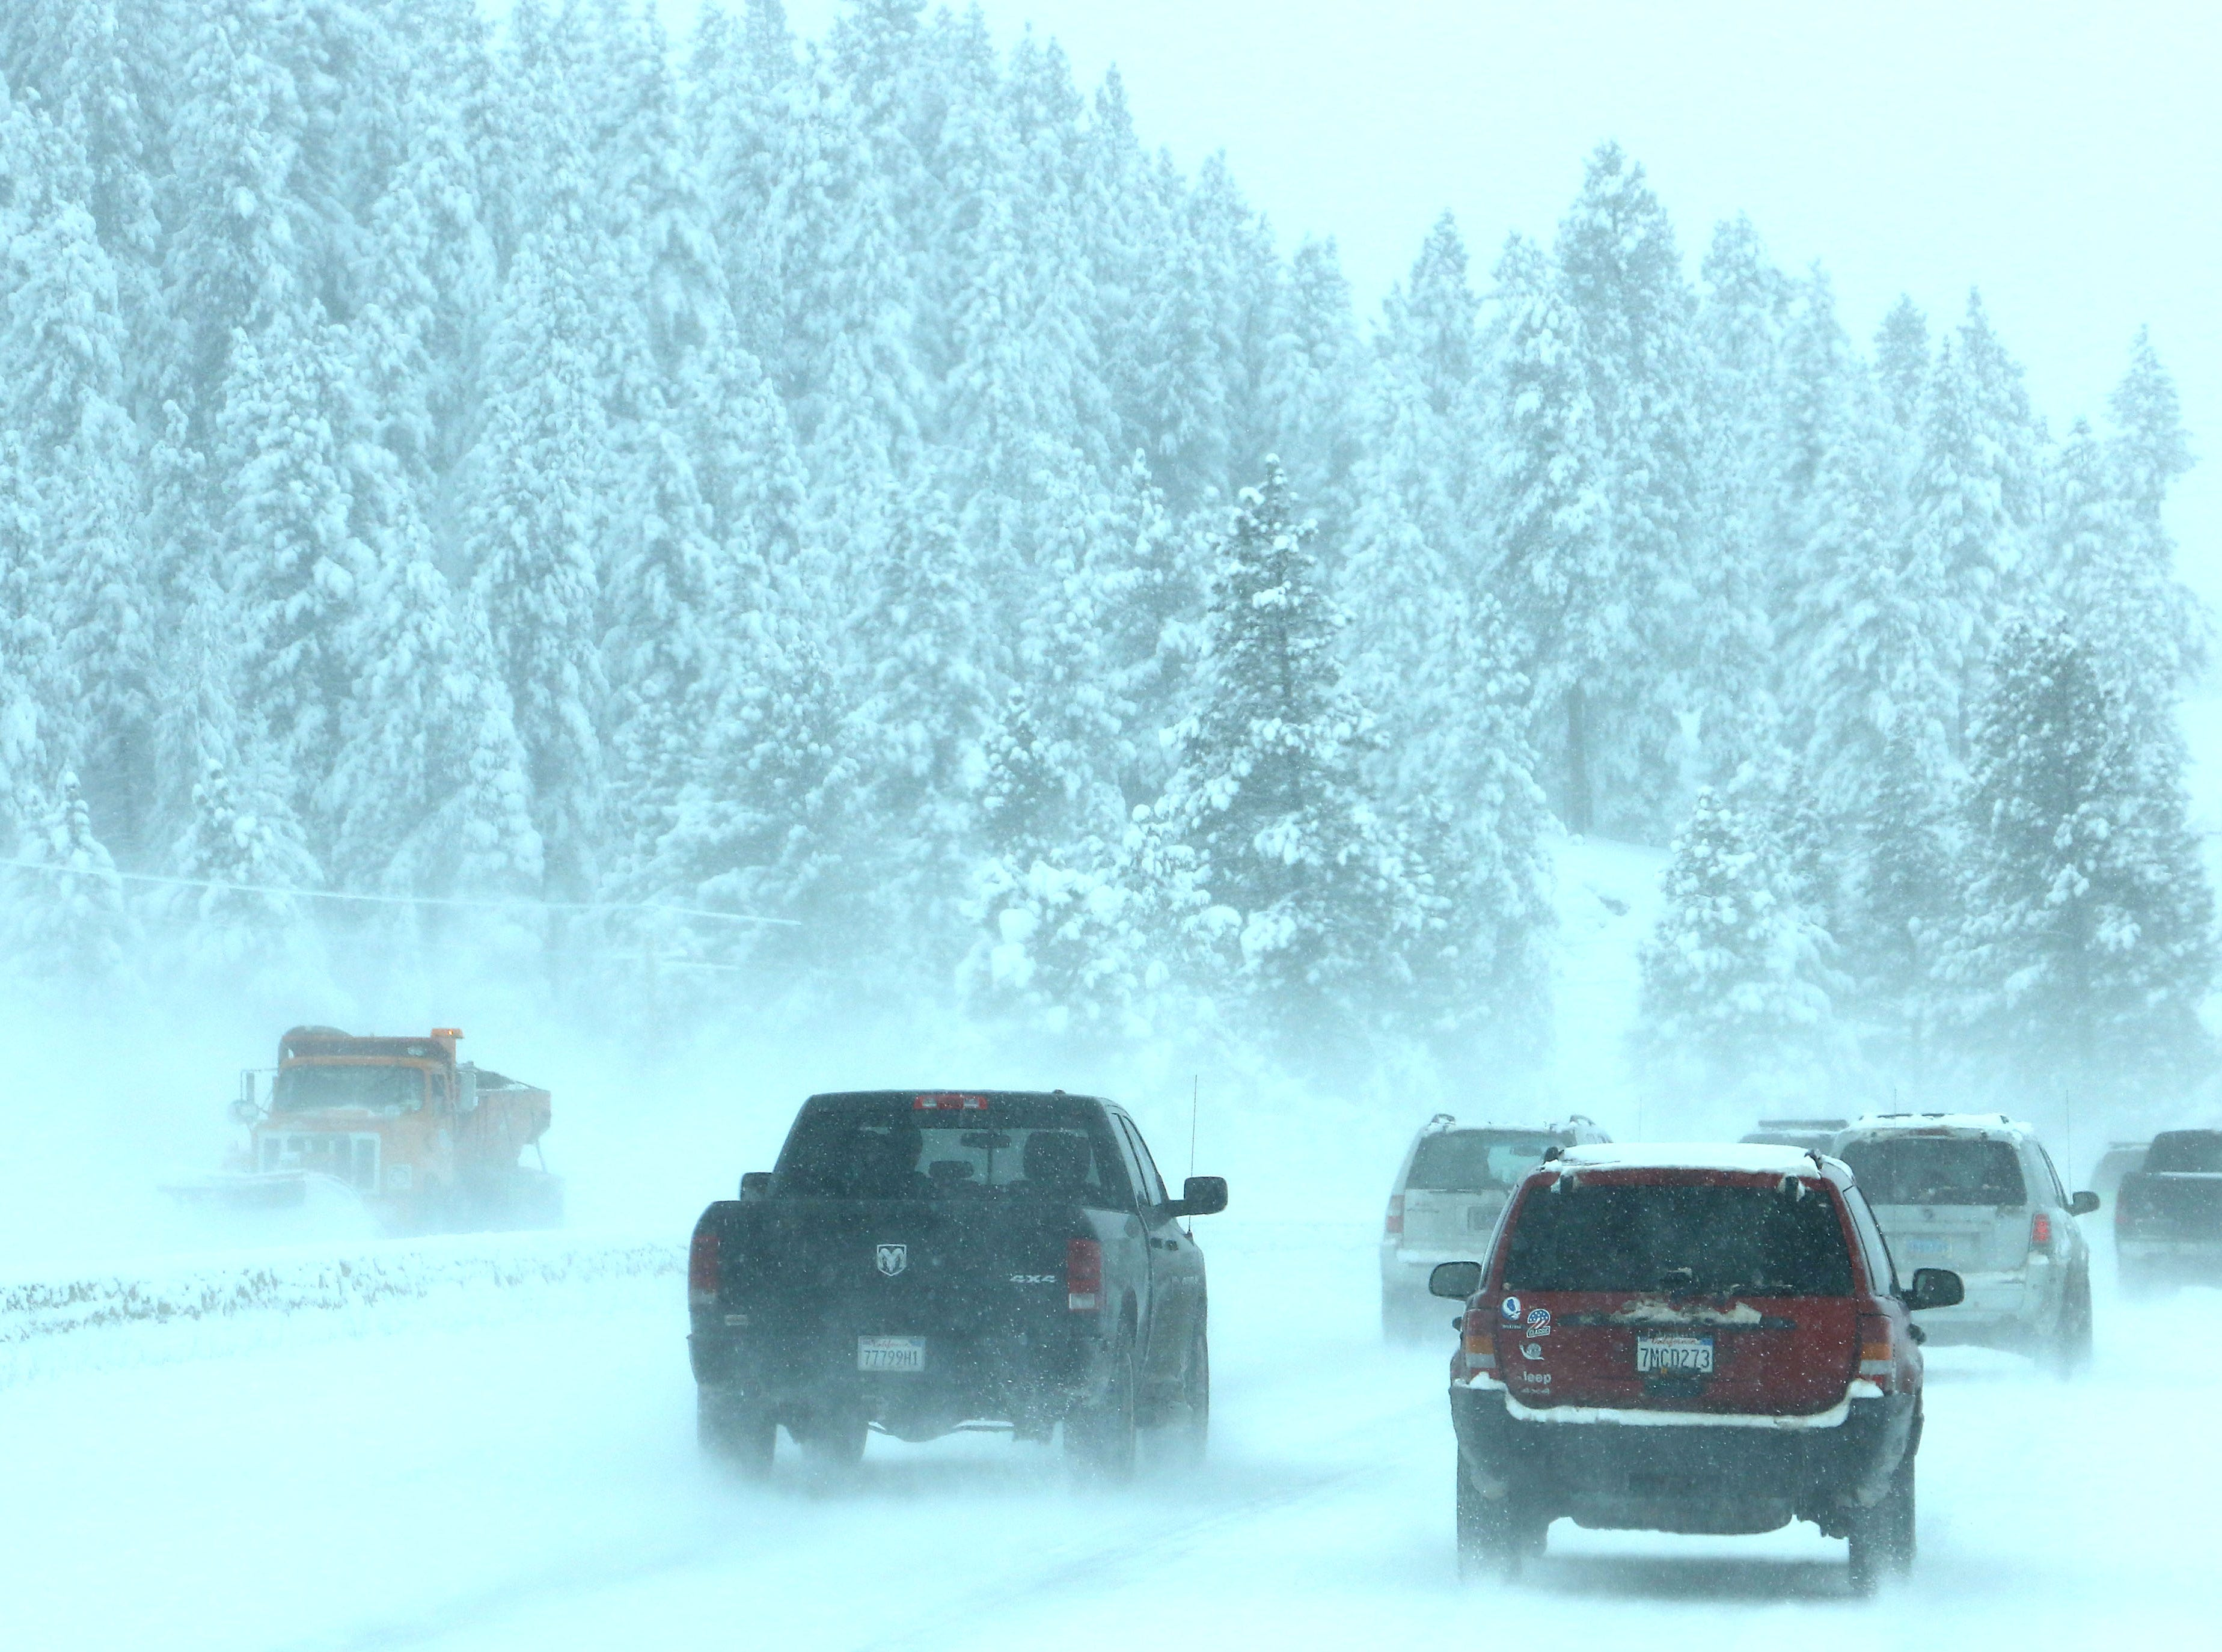 California Highway Patrol and Caltrans reopen I-80 after a major storm hit the Reno-Tahoe region on Feb. 5, 2019.